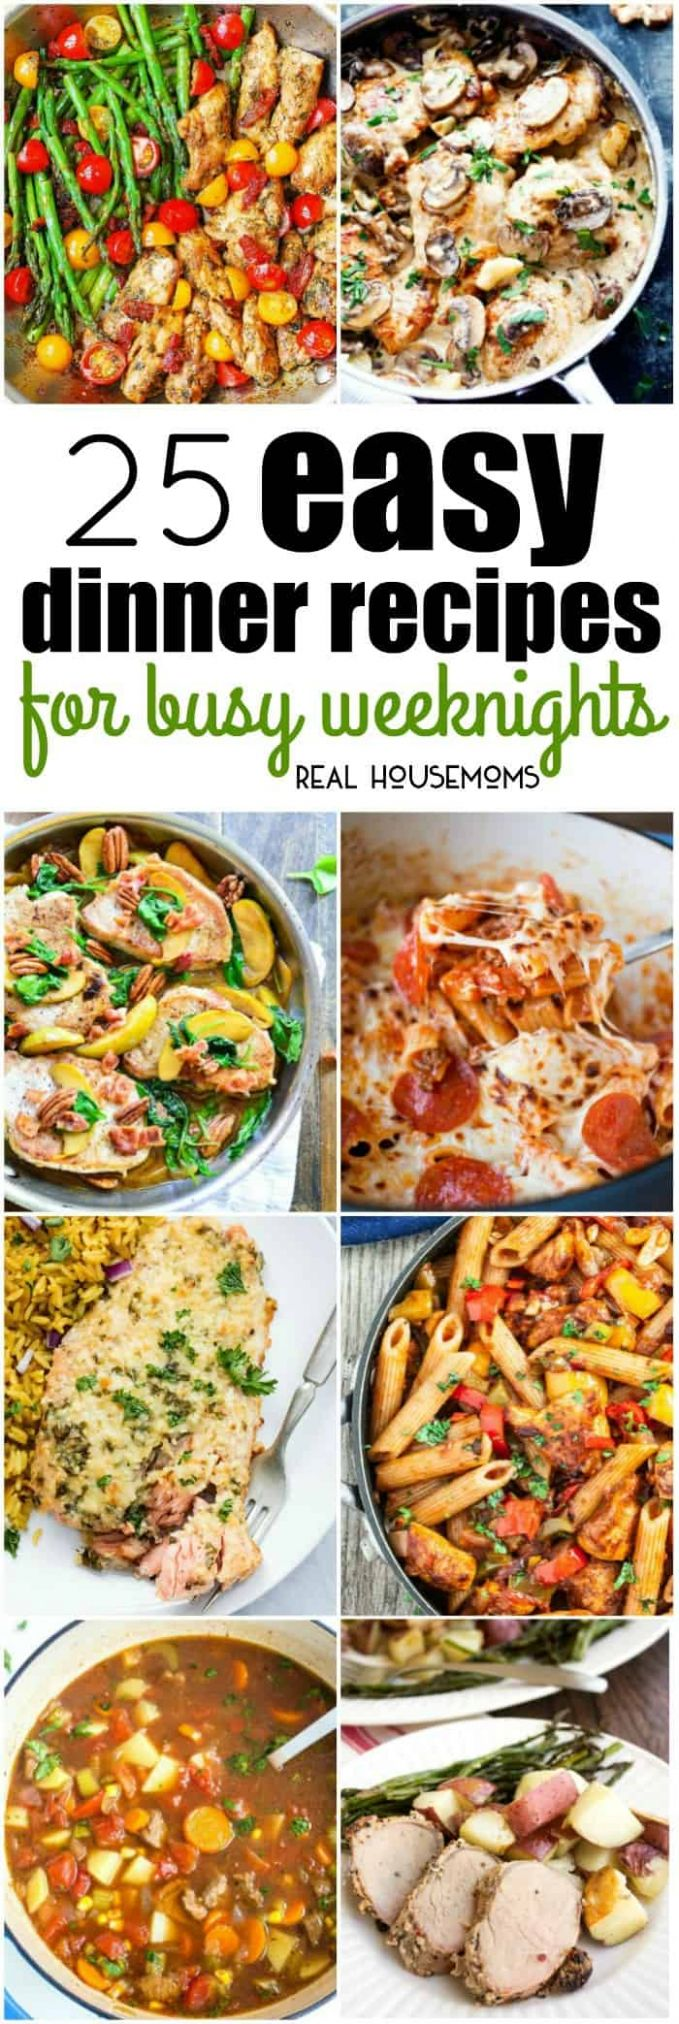 8 Easy Dinner Recipes for Busy Weeknights ⋆ Real Housemoms - Food Recipes Easy At Home